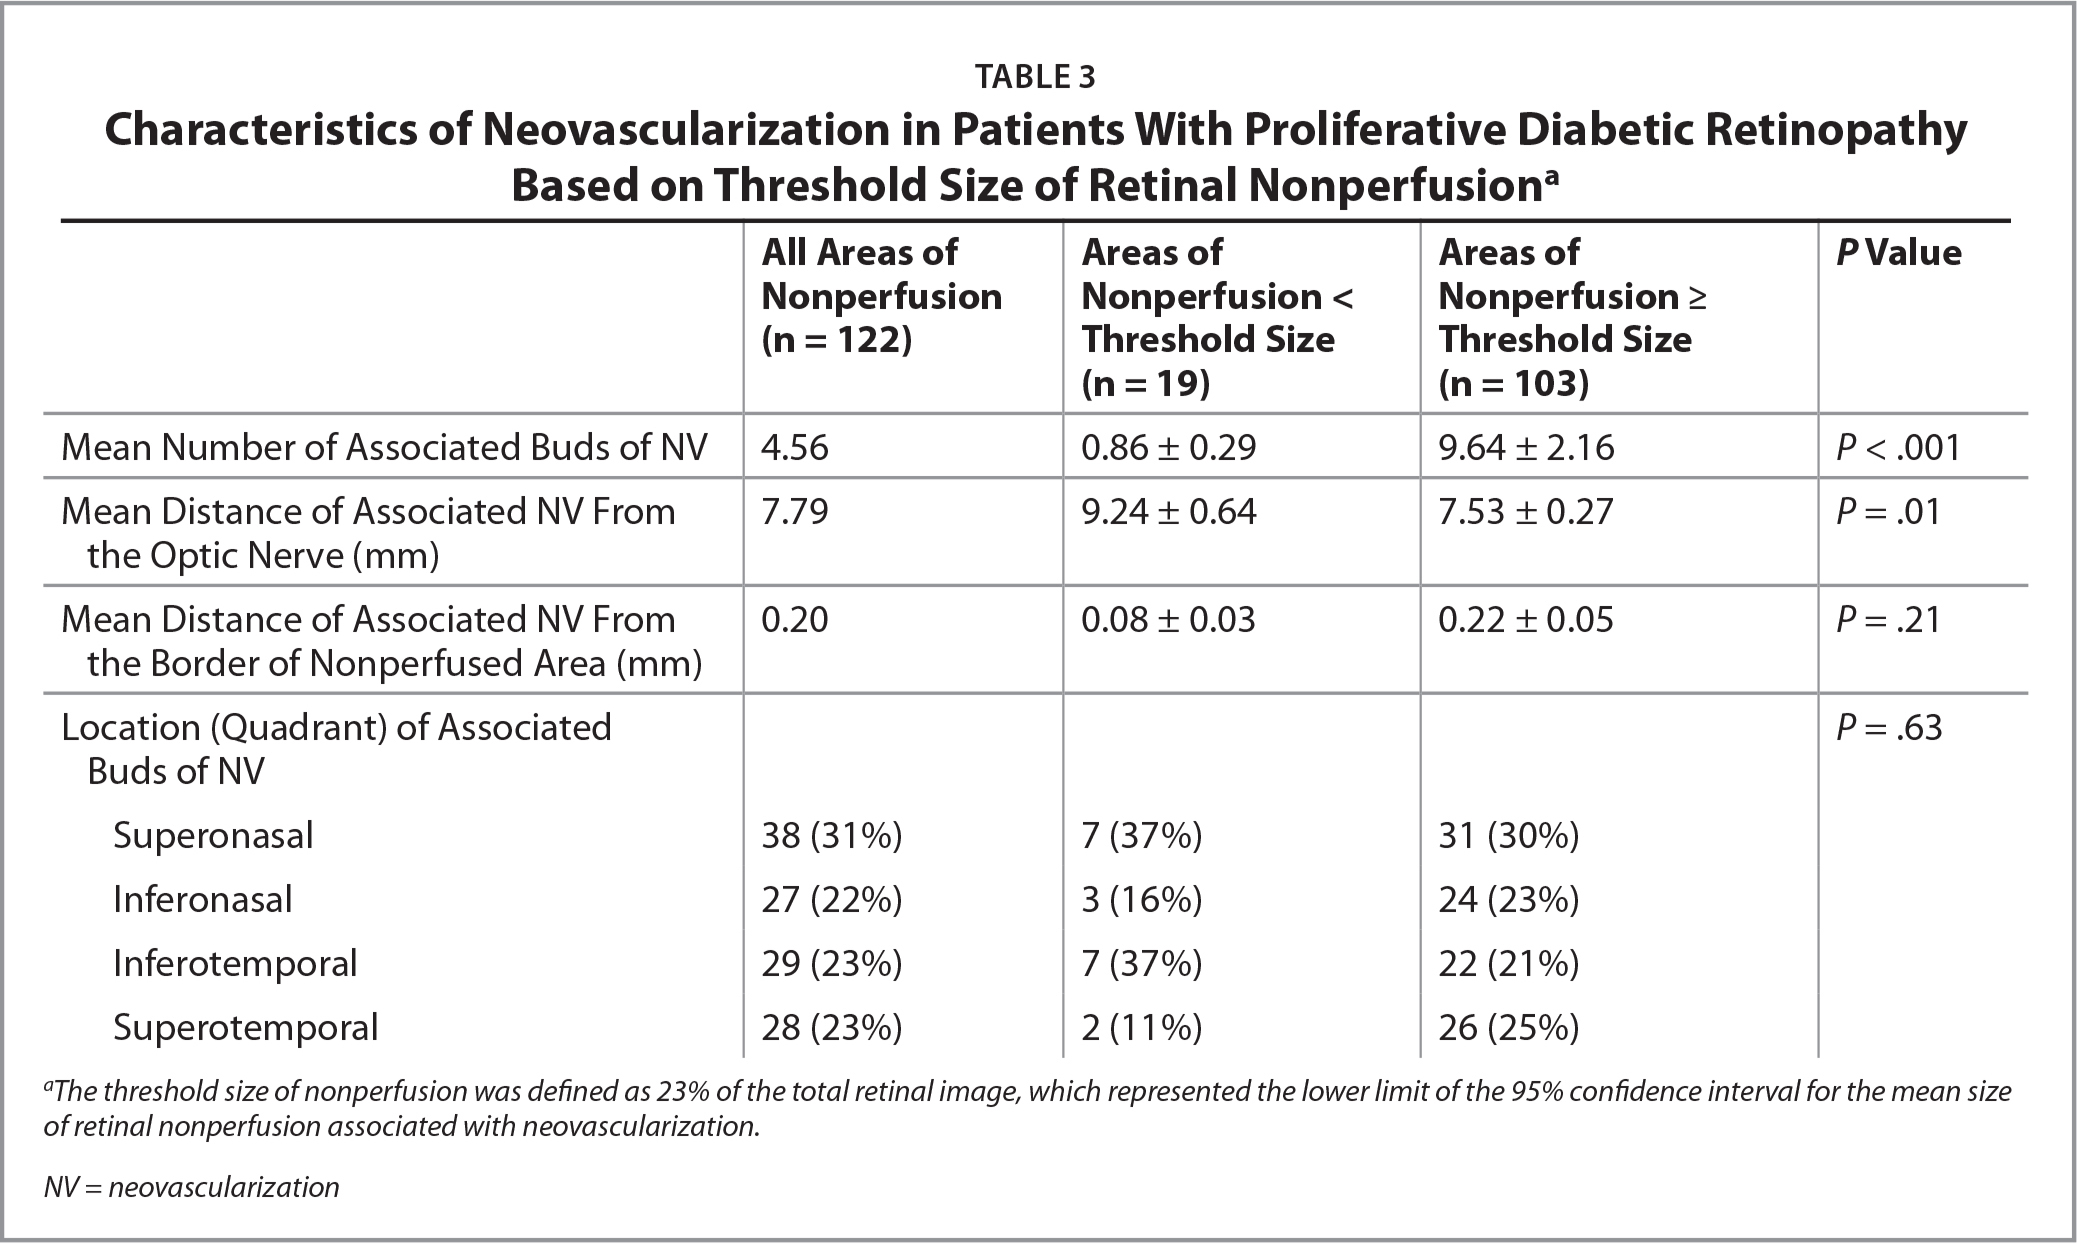 Characteristics of Neovascularization in Patients With Proliferative Diabetic Retinopathy Based on Threshold Size of Retinal Nonperfusiona